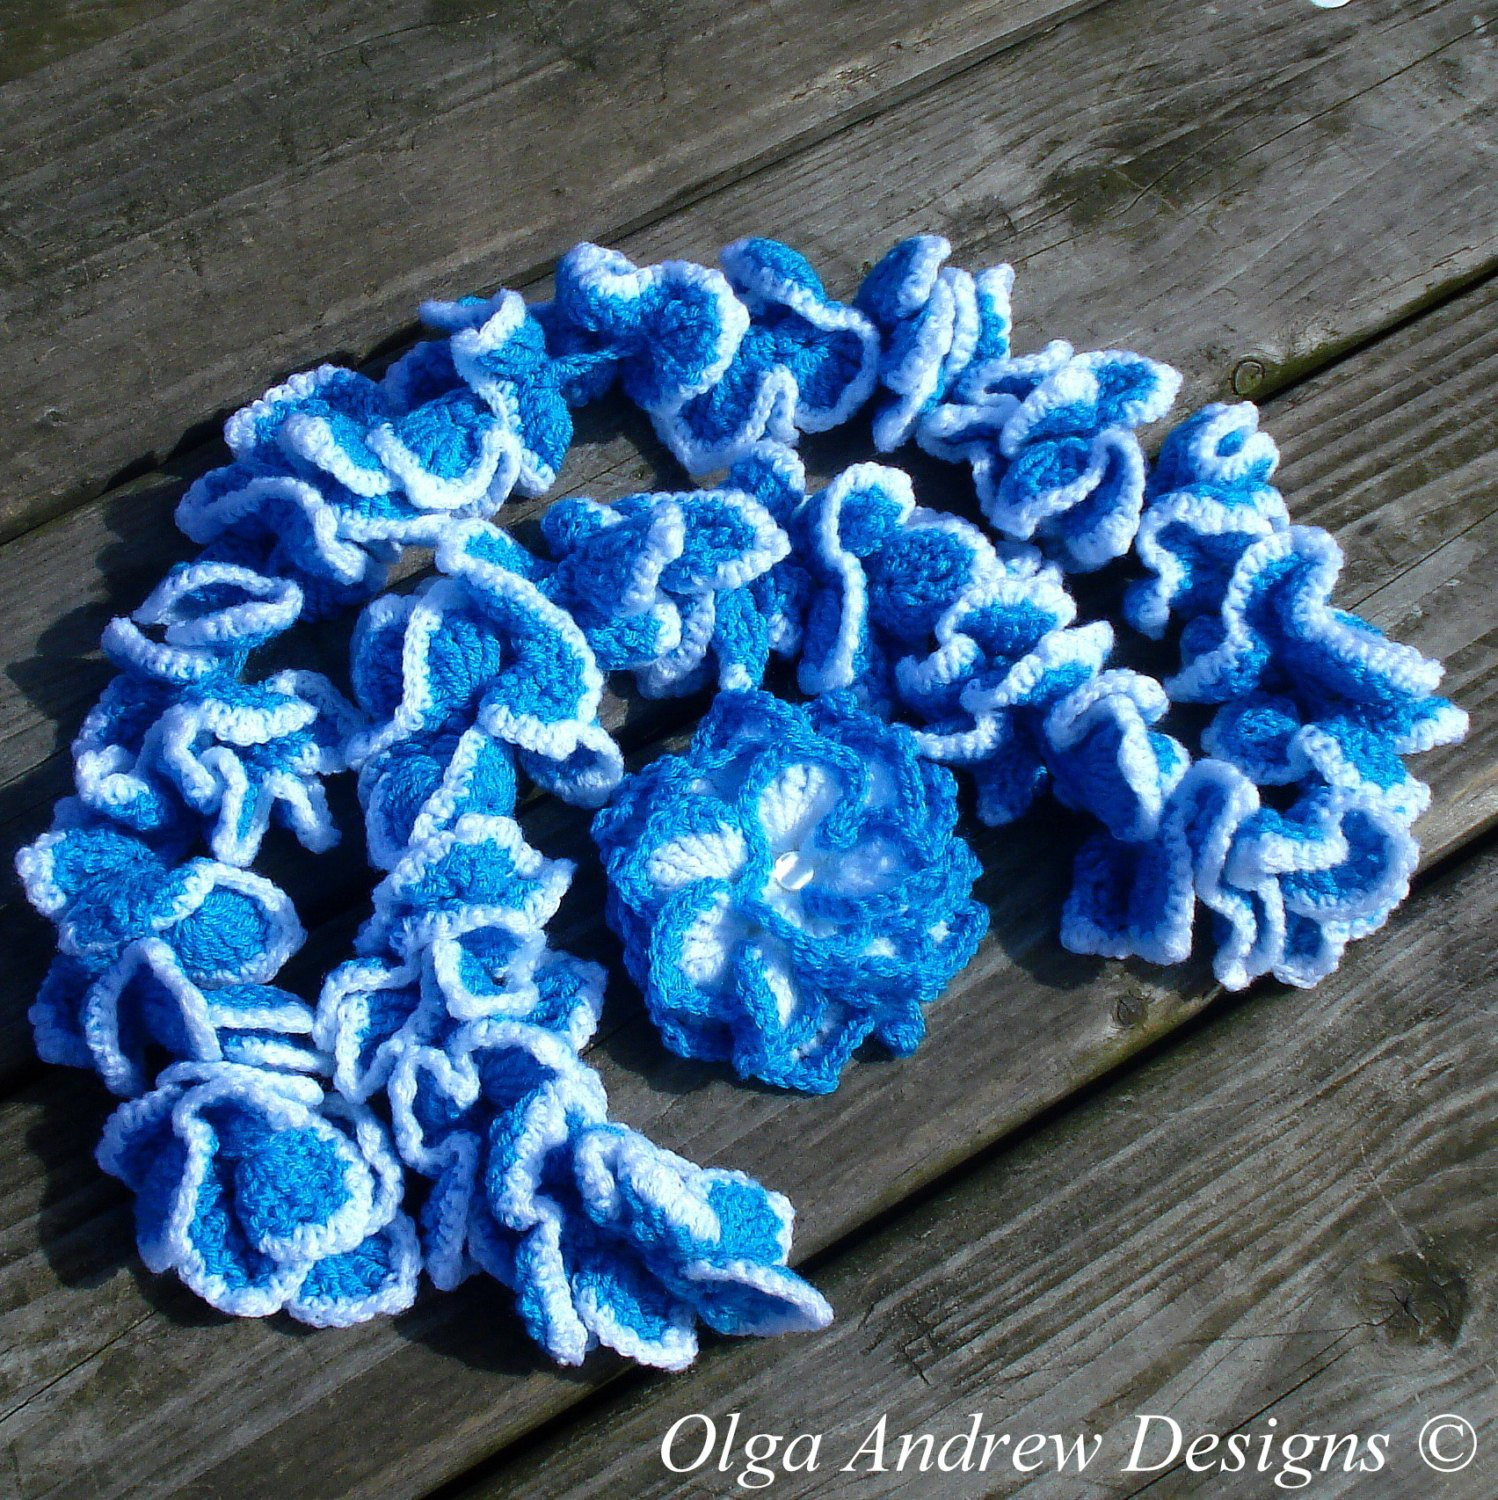 Lovely Scarf Crochet Flower Brooch Crochet Ruffle Scarf Crochet Crochet Ruffle Scarf Of Inspirational Firehawke Hooks and Needles Free Pattern Ruffle Scarf Crochet Ruffle Scarf